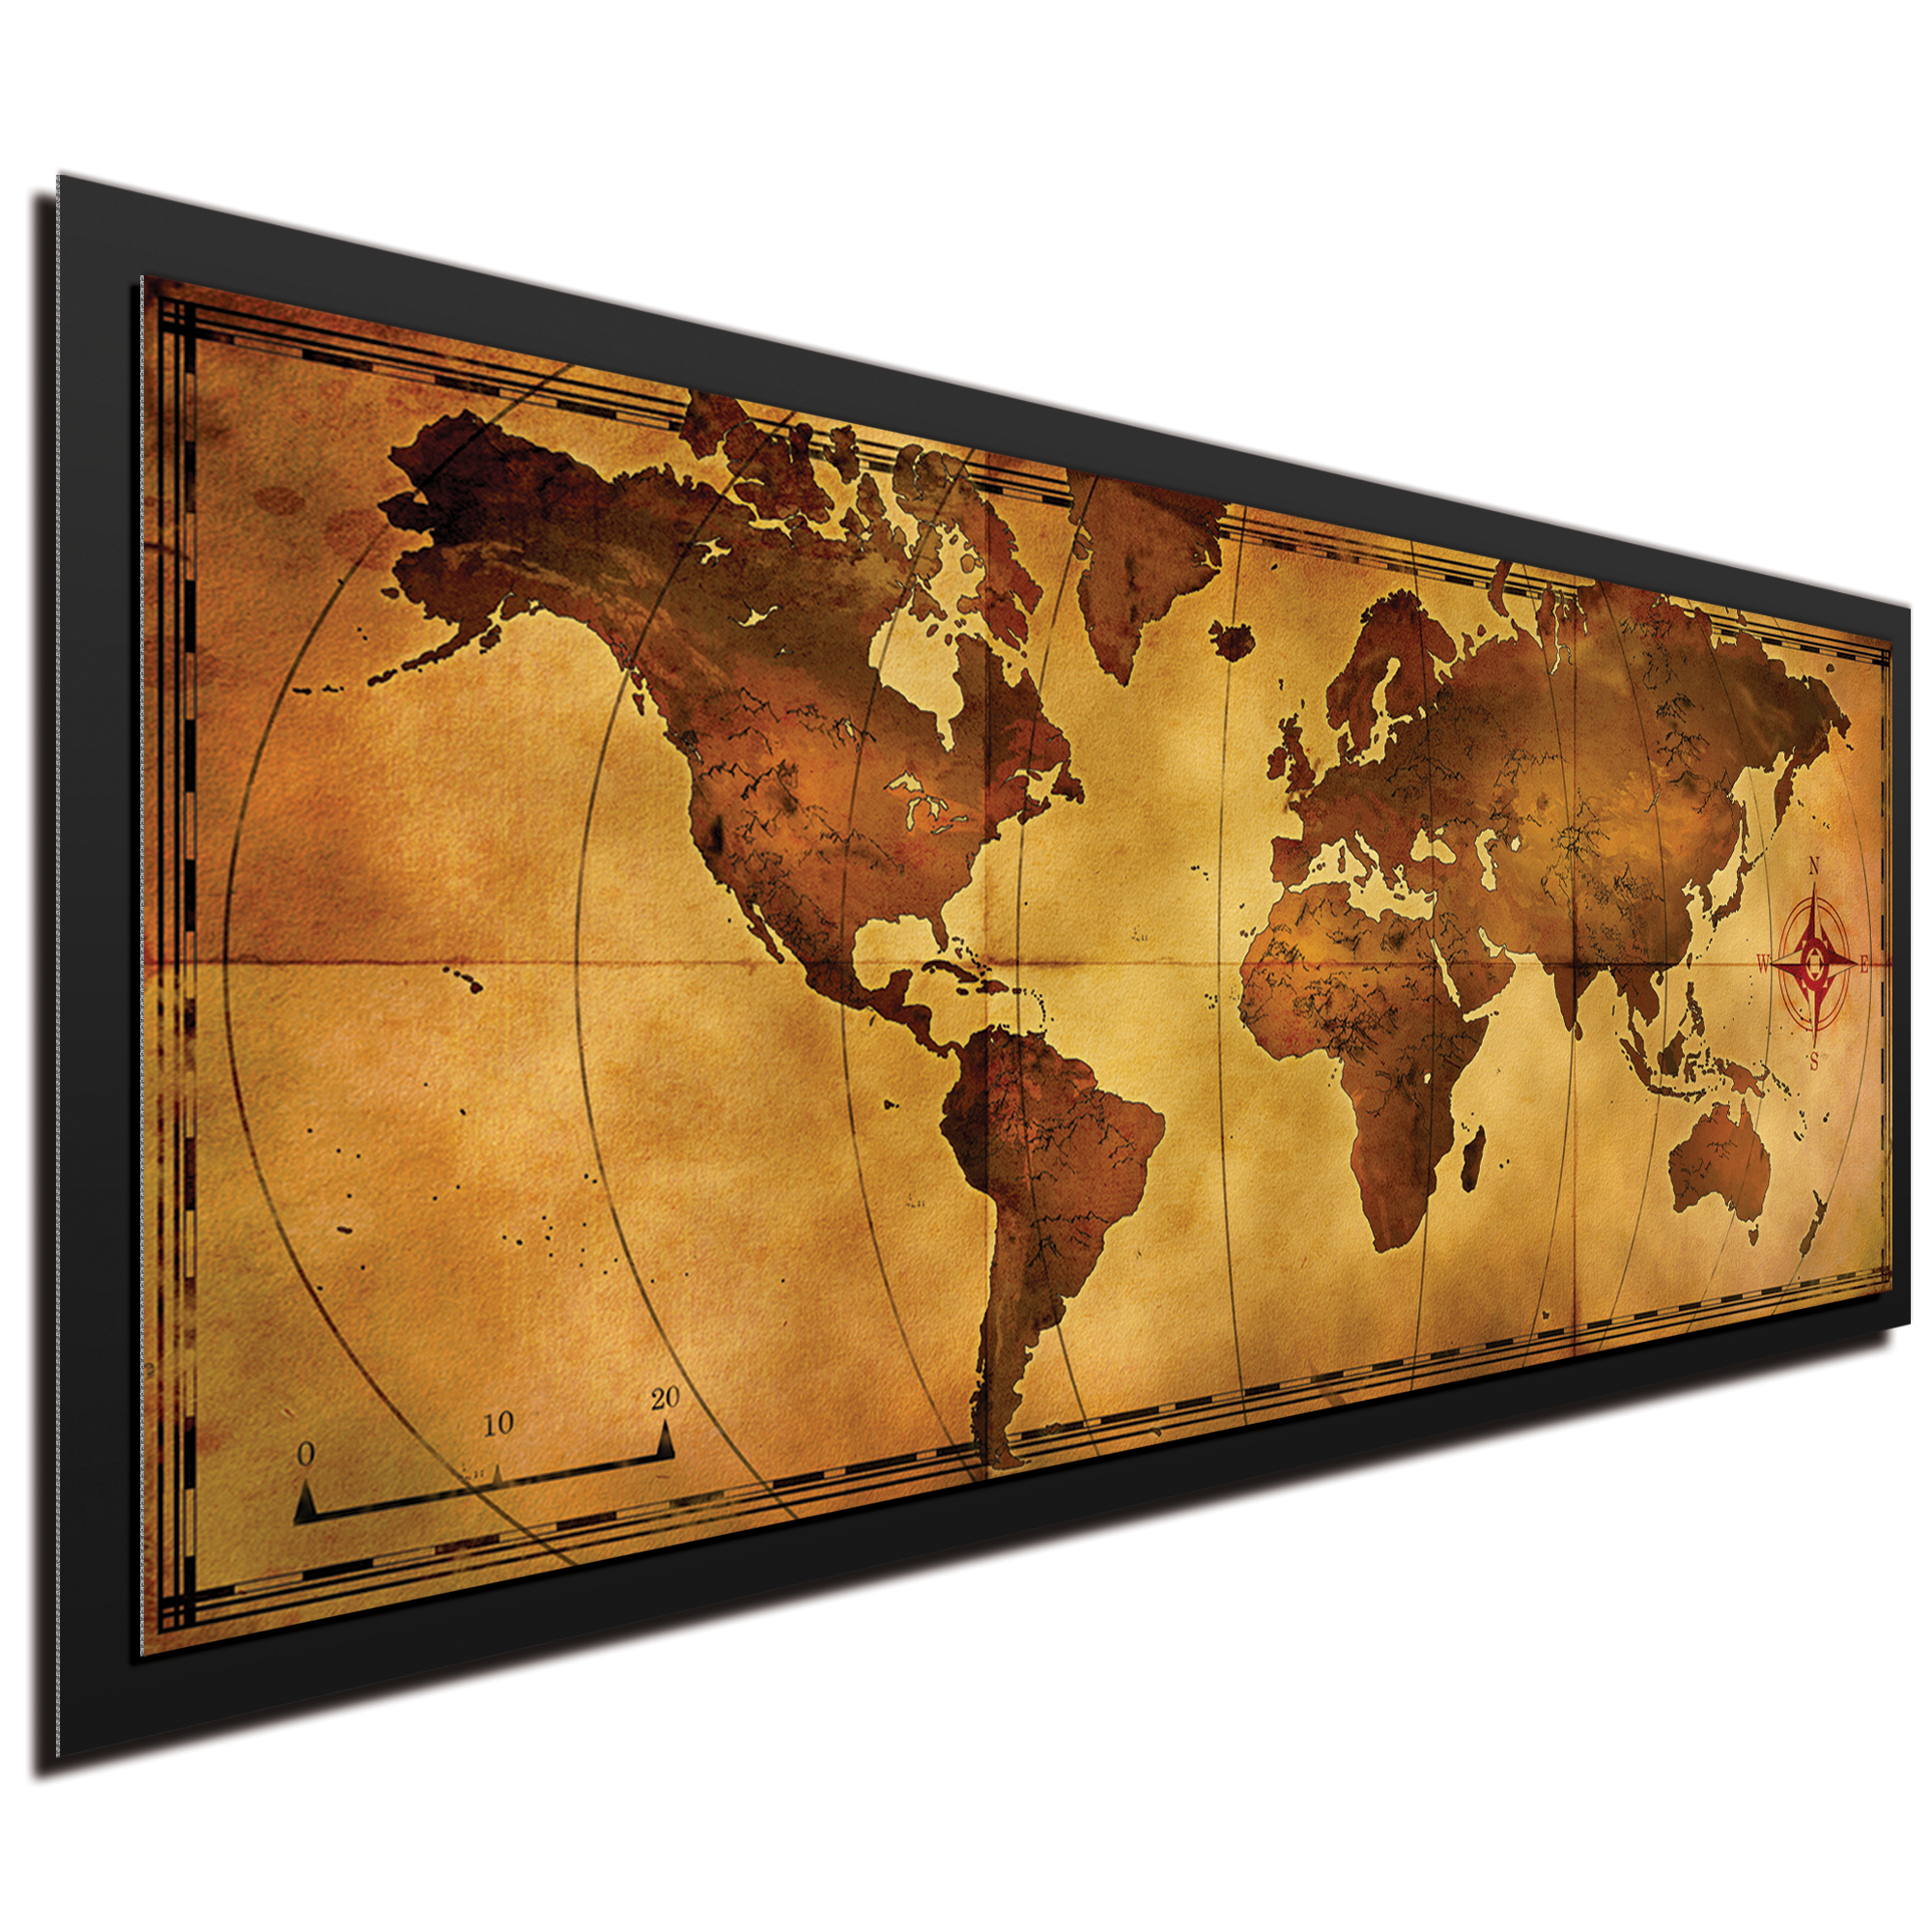 Old World Map Framed - Image 2